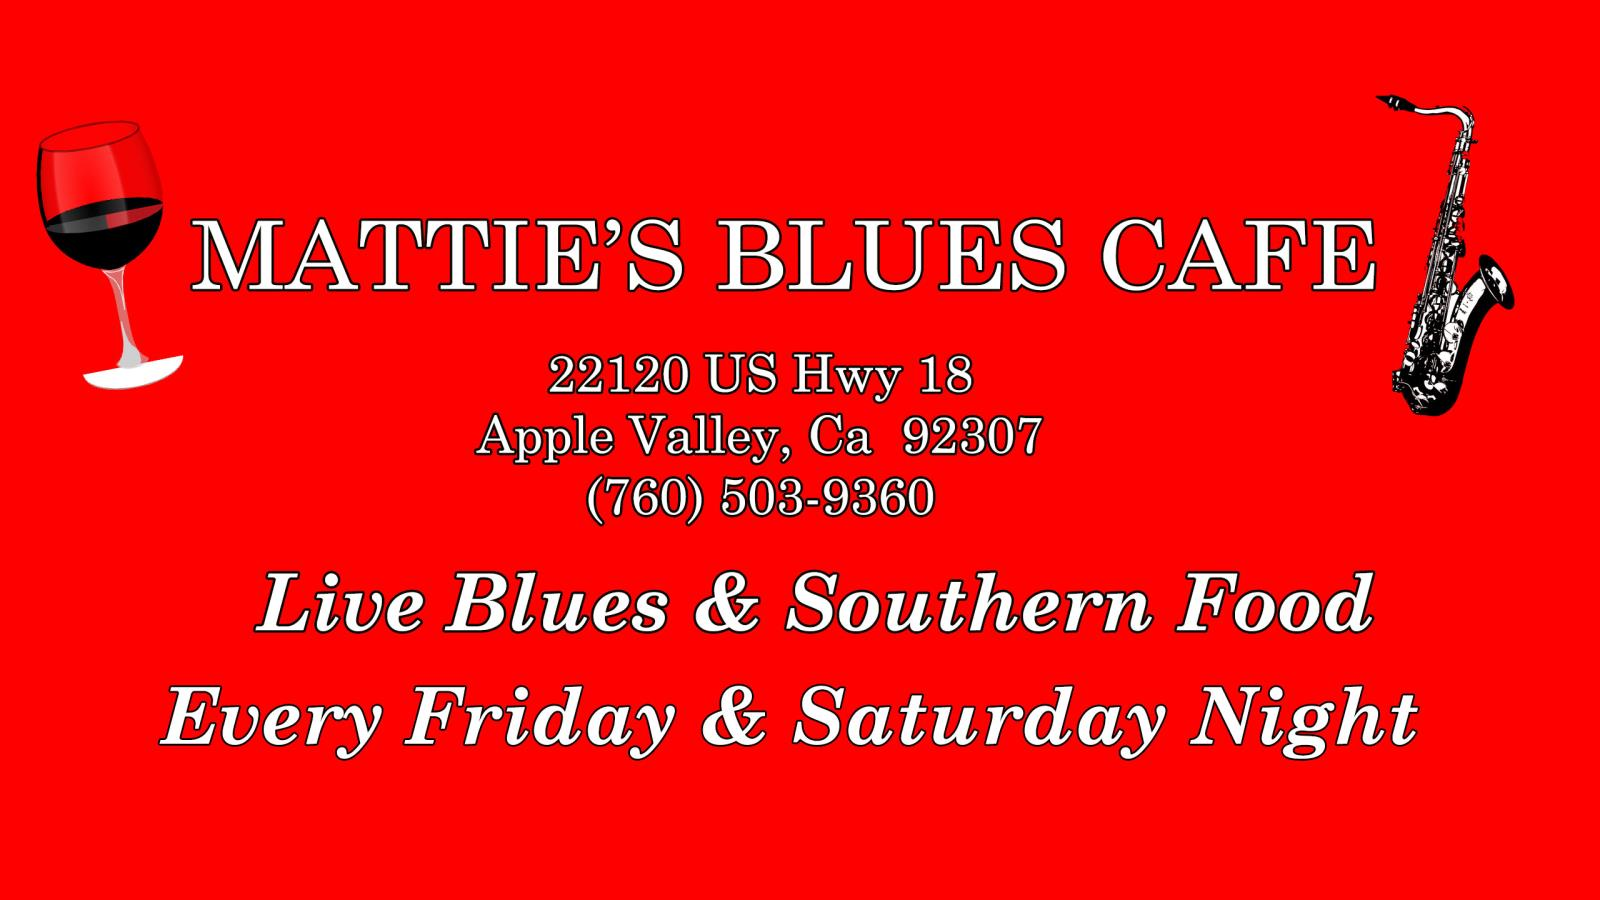 Mattie's Blues Cafe